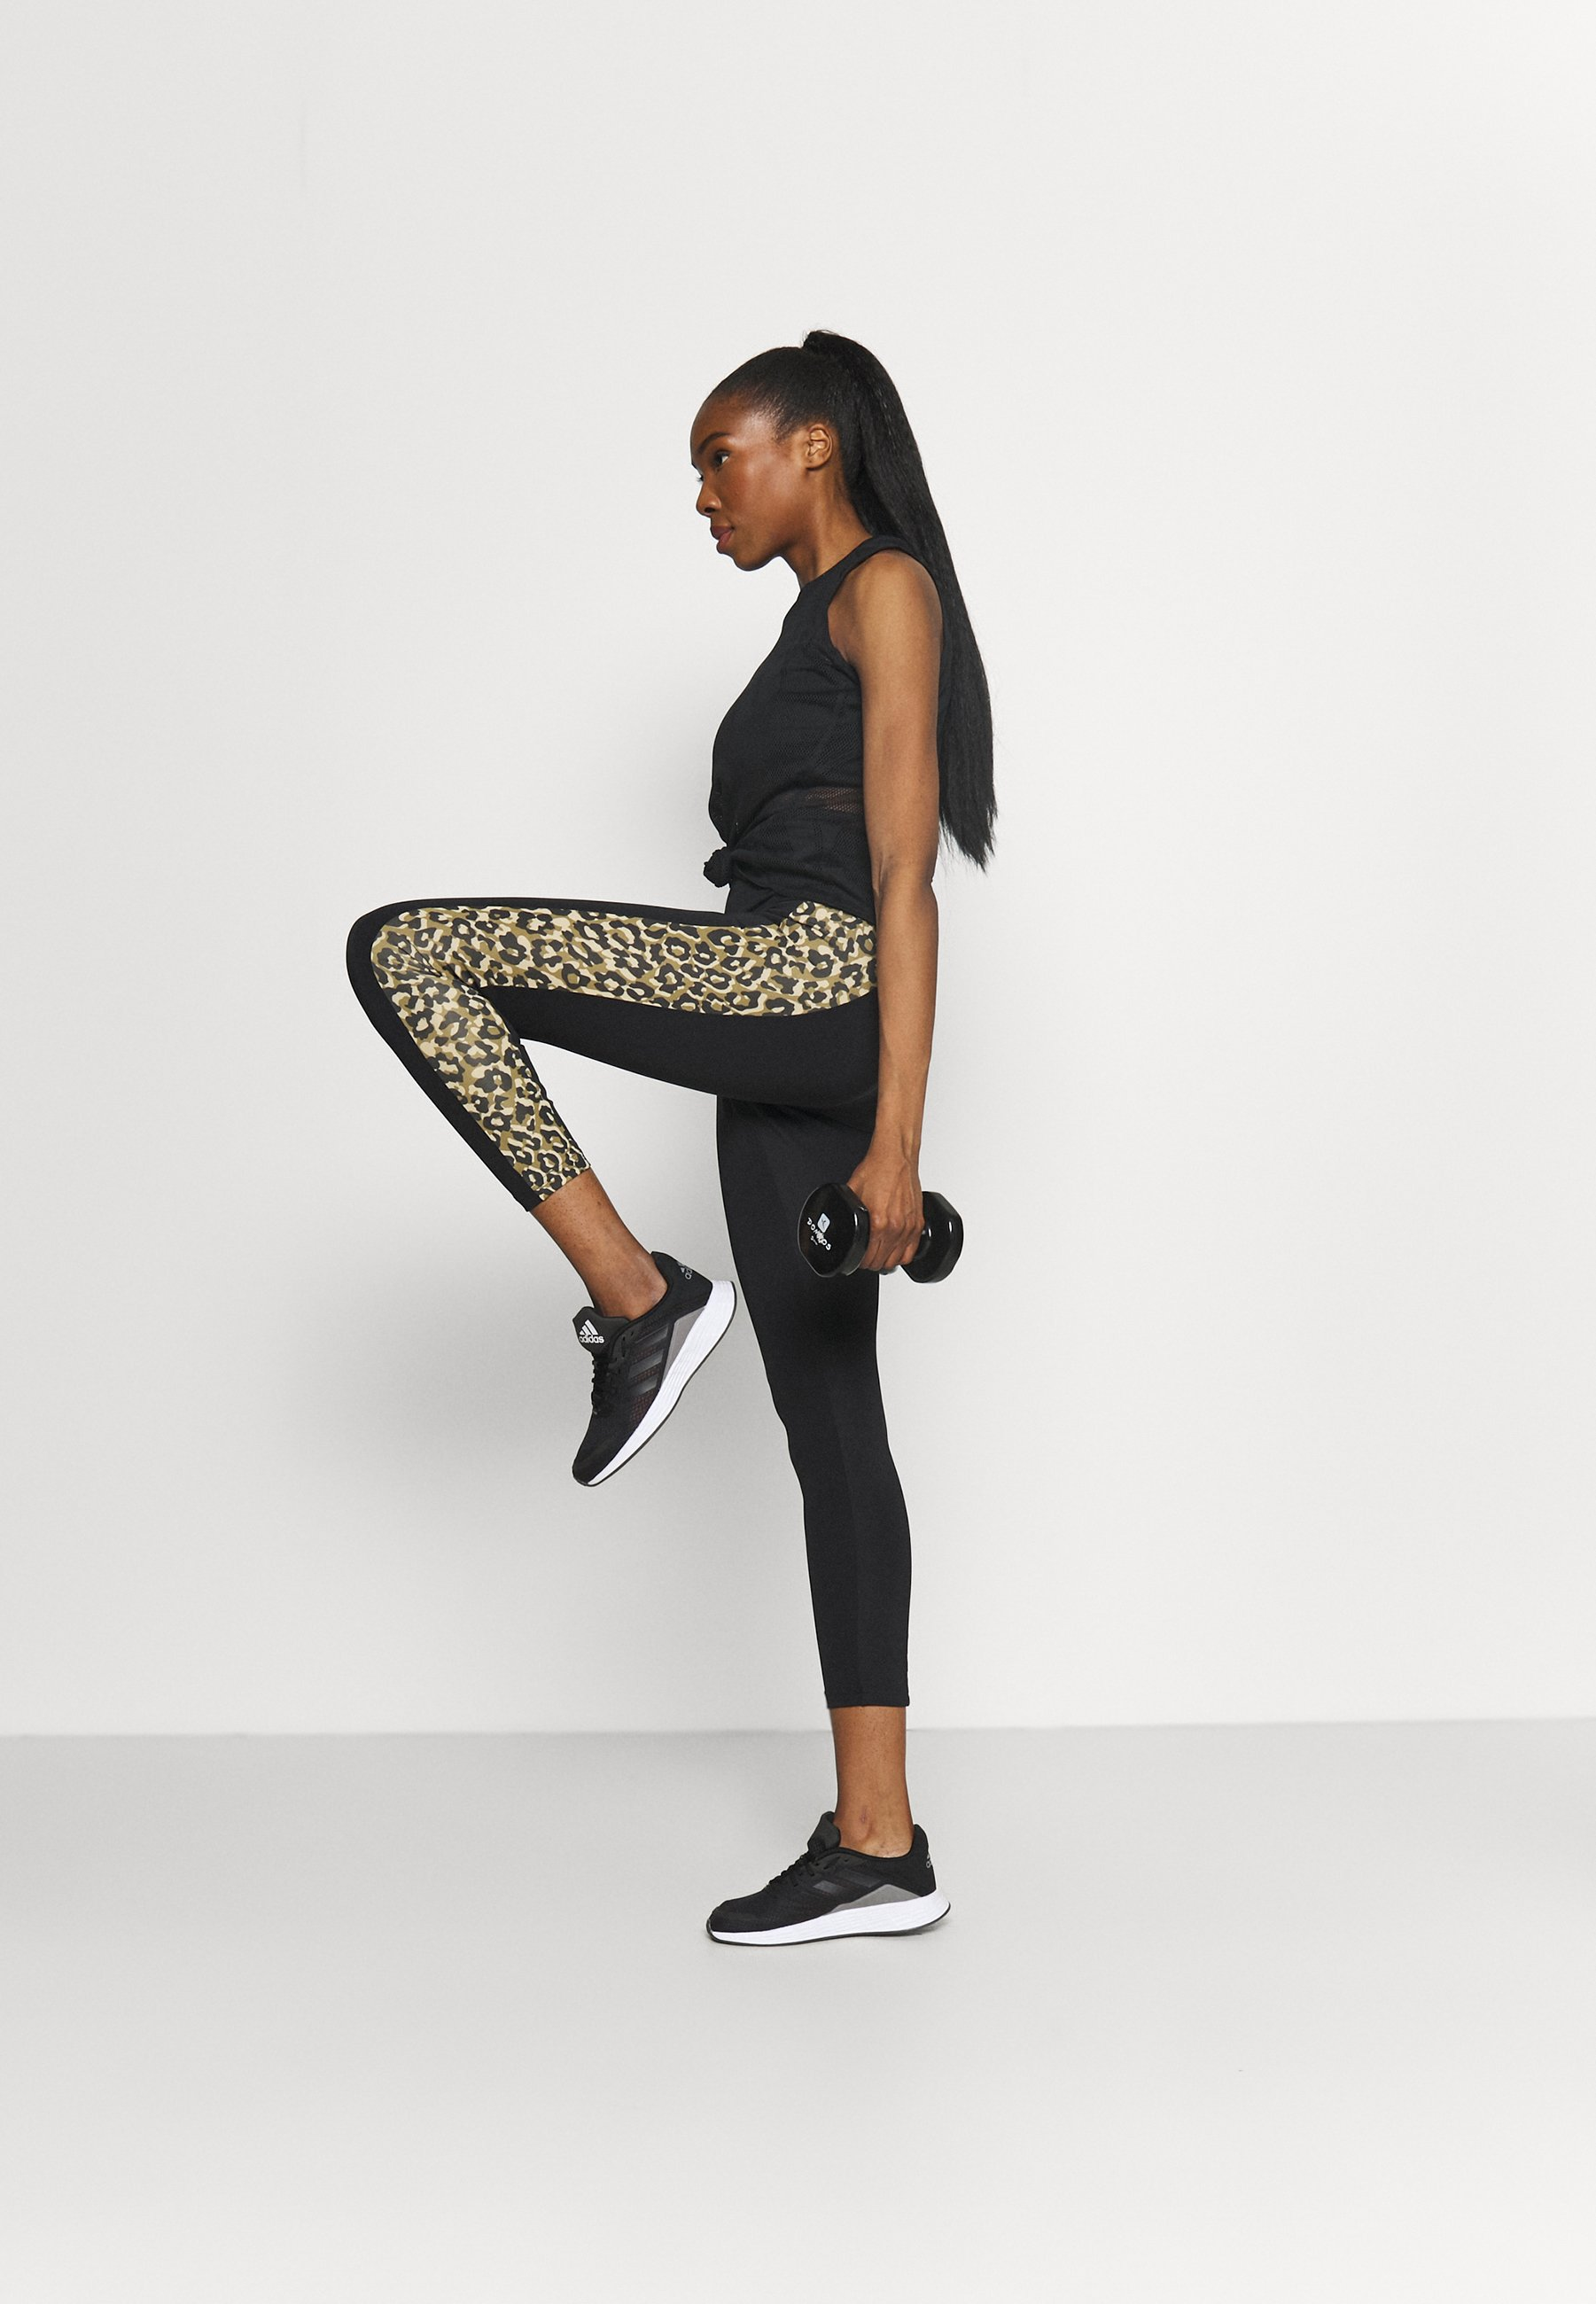 Femme BELIEVE THIS 2.0 LACE AEROREADY WORKOUT COMPRESSION 7/8 LEGGINGS - Collants